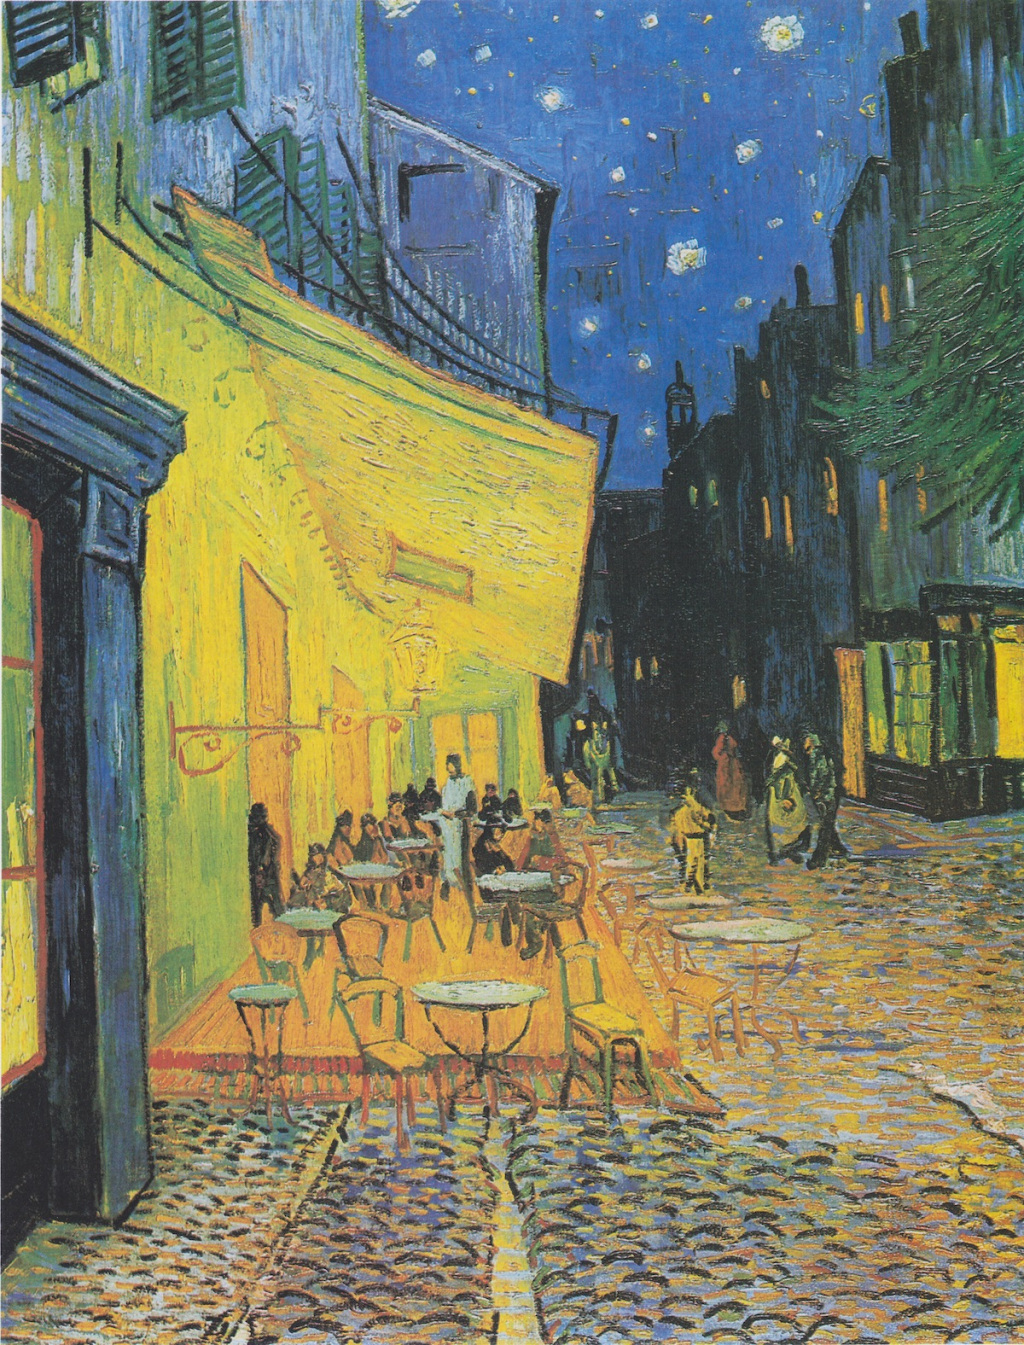 Van Gogh Blockbuster Will Grace London, Picasso Found in Closet Sells, and More: Morning Links for July 2, 2021